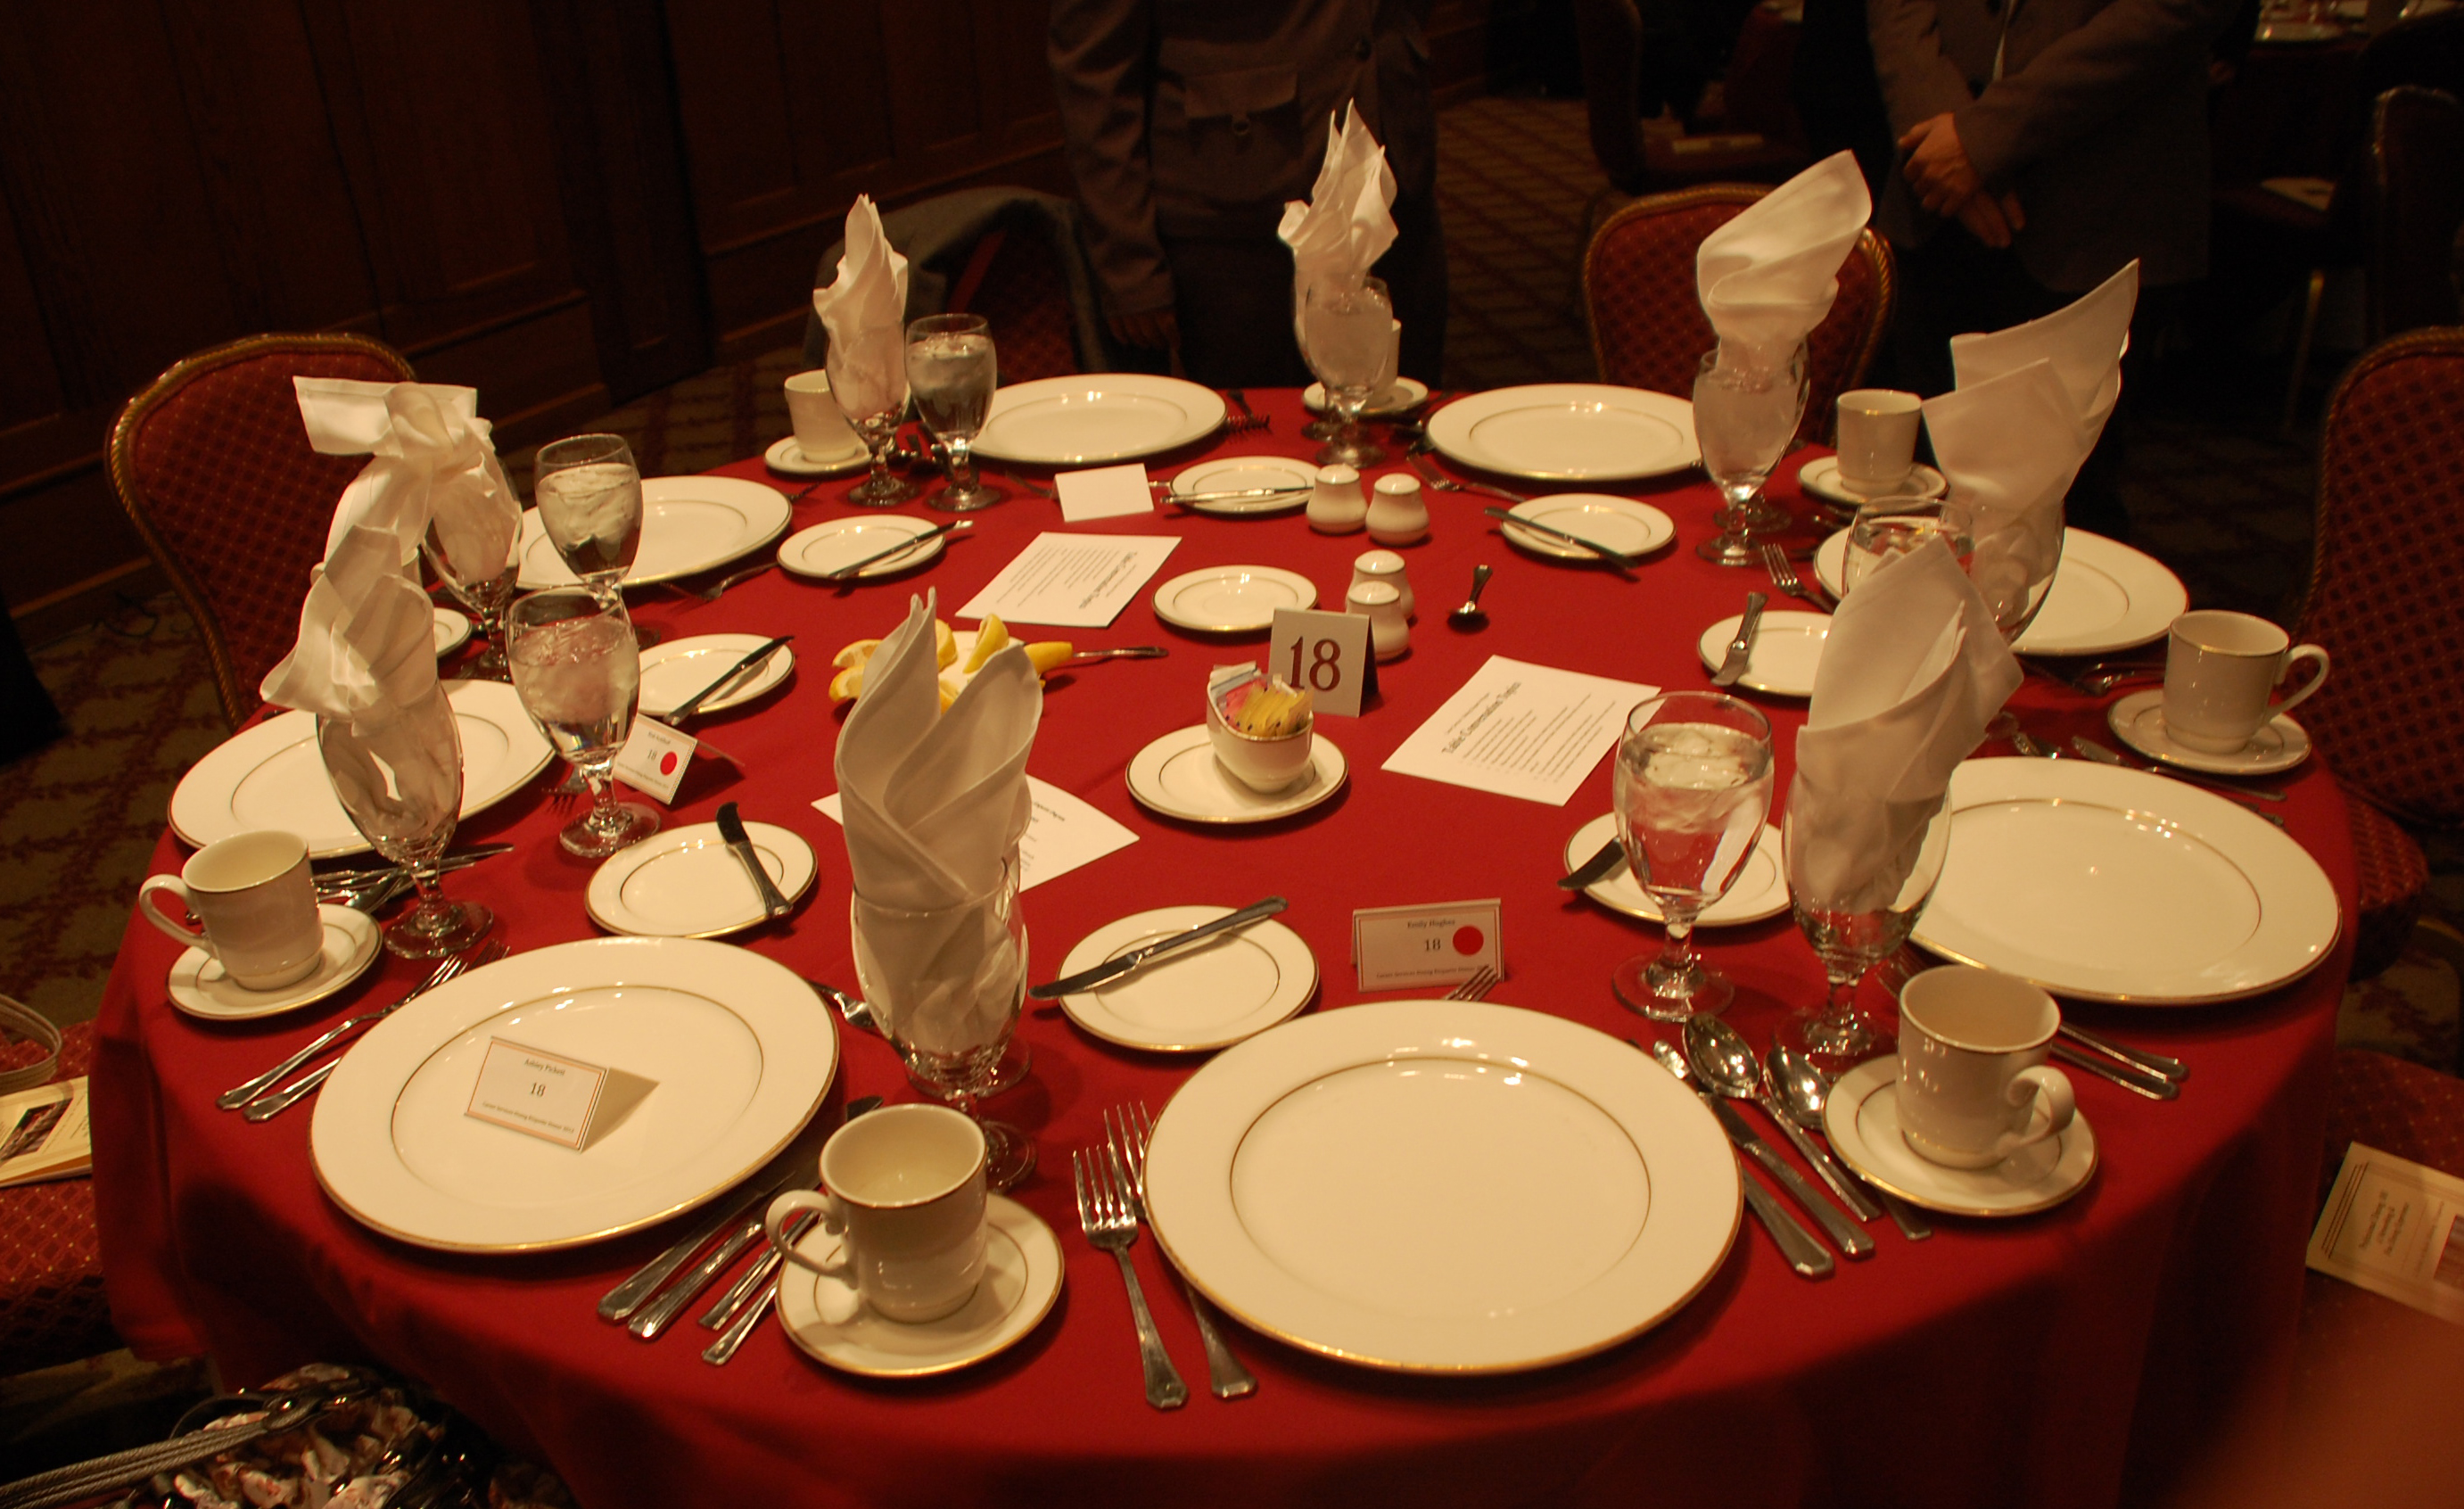 A formal dinner setting on a red tablecloth